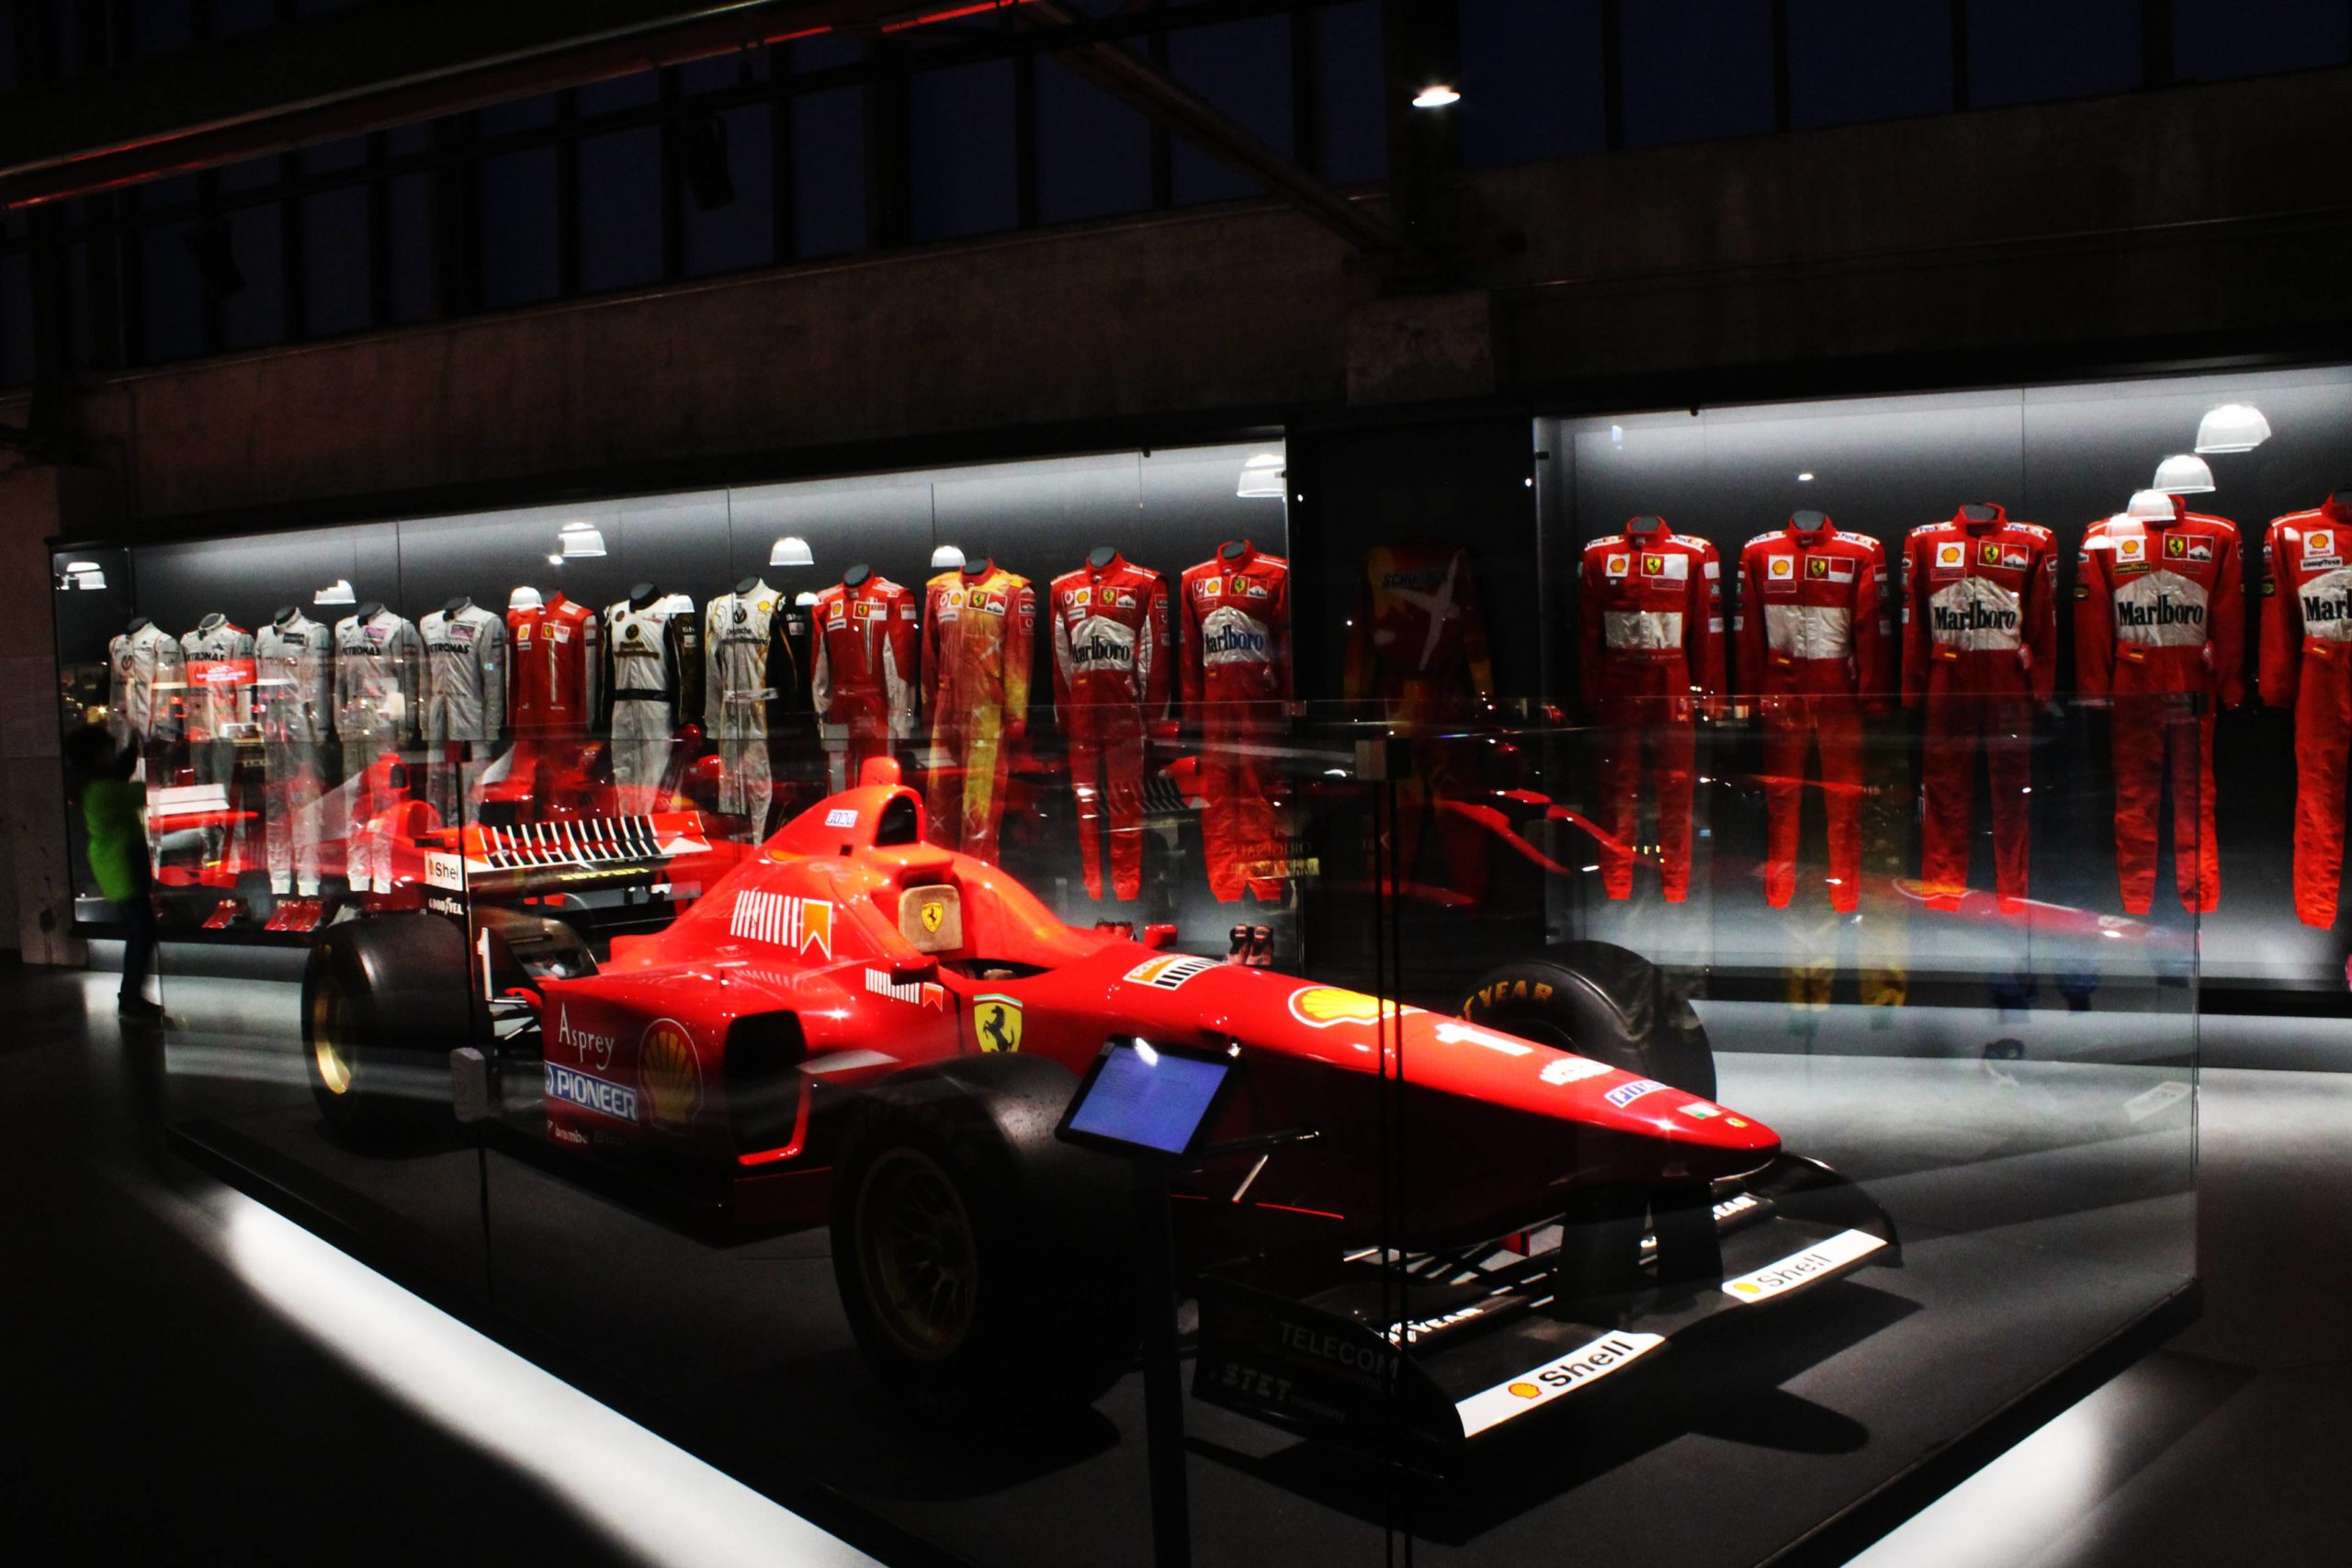 Poco Butzweilerhof Una Visita A La Michael Schumacher Private Collection - Camino A Boxes